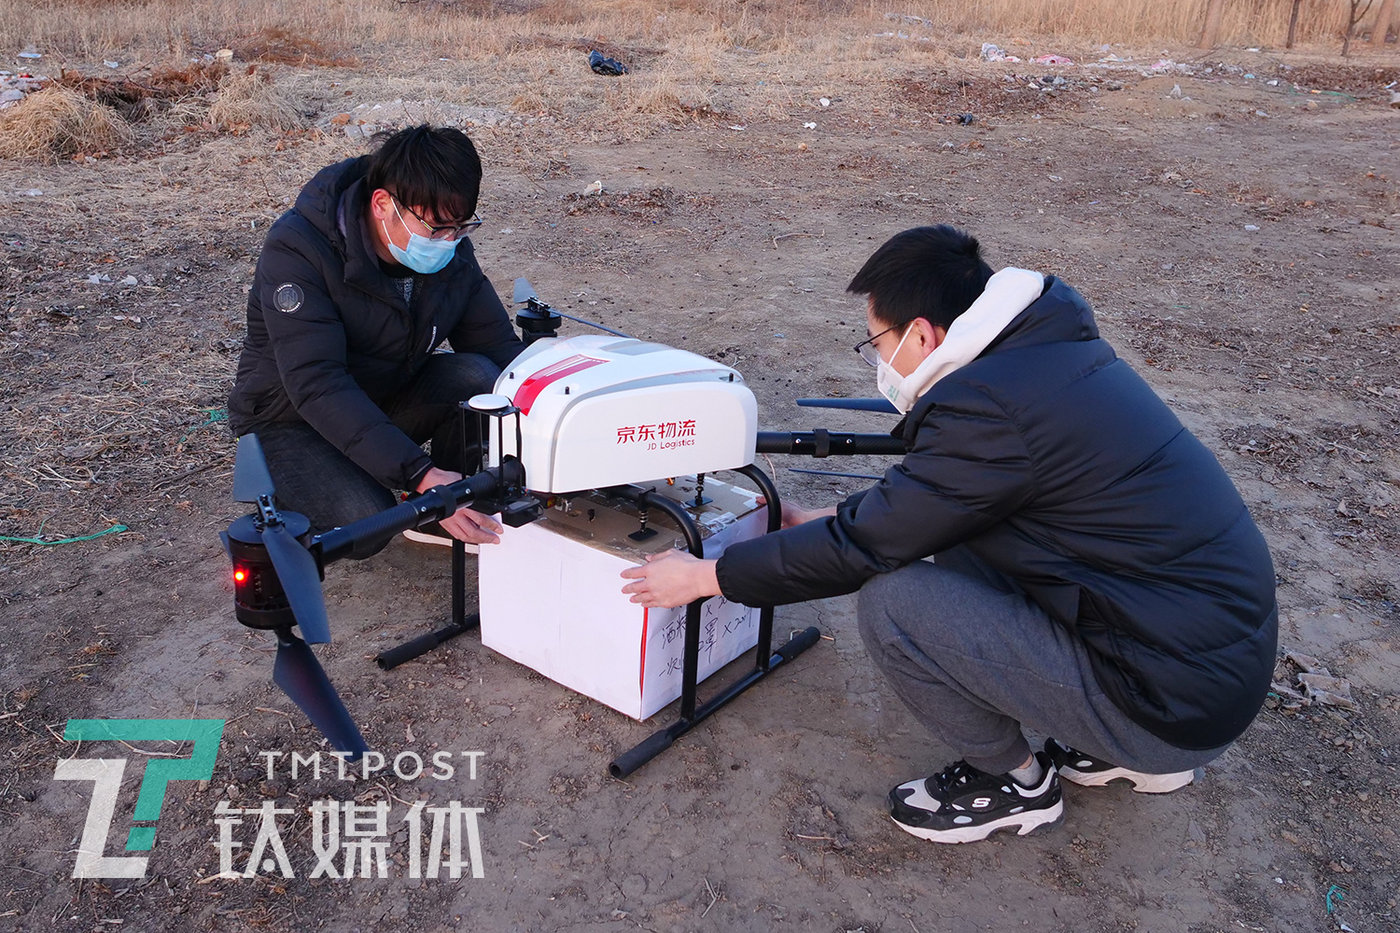 A JD logistics drone carrying a box of protective and disinfection supplies lands in the village of Yangliuzhuang in Anxin County, Baoding. The epidemic brought the Baiyangdian Ferry to a halt, causing the villagers huge inconvenience; they might have to walk a 100-kilometer detour just to purchase goods, if not for the JD drone being able to cross the lake, cutting the distance to just 2 kilometers.  (Baoding, Hebei Province, February 8,  2020)